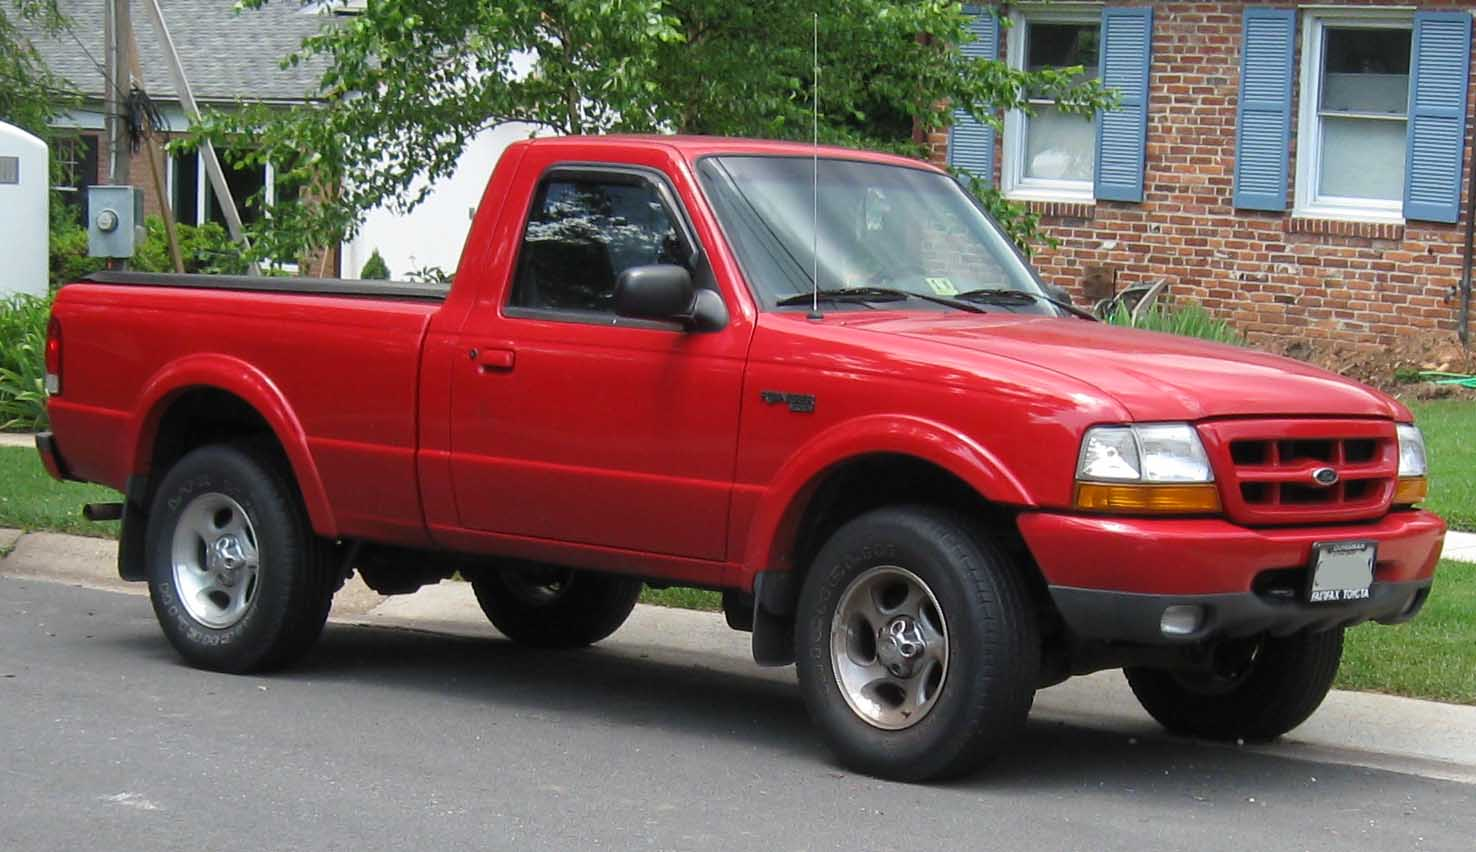 2001 Ford Ranger Supercab Mpg Seven Modified 2019 Ford Rangers Debut